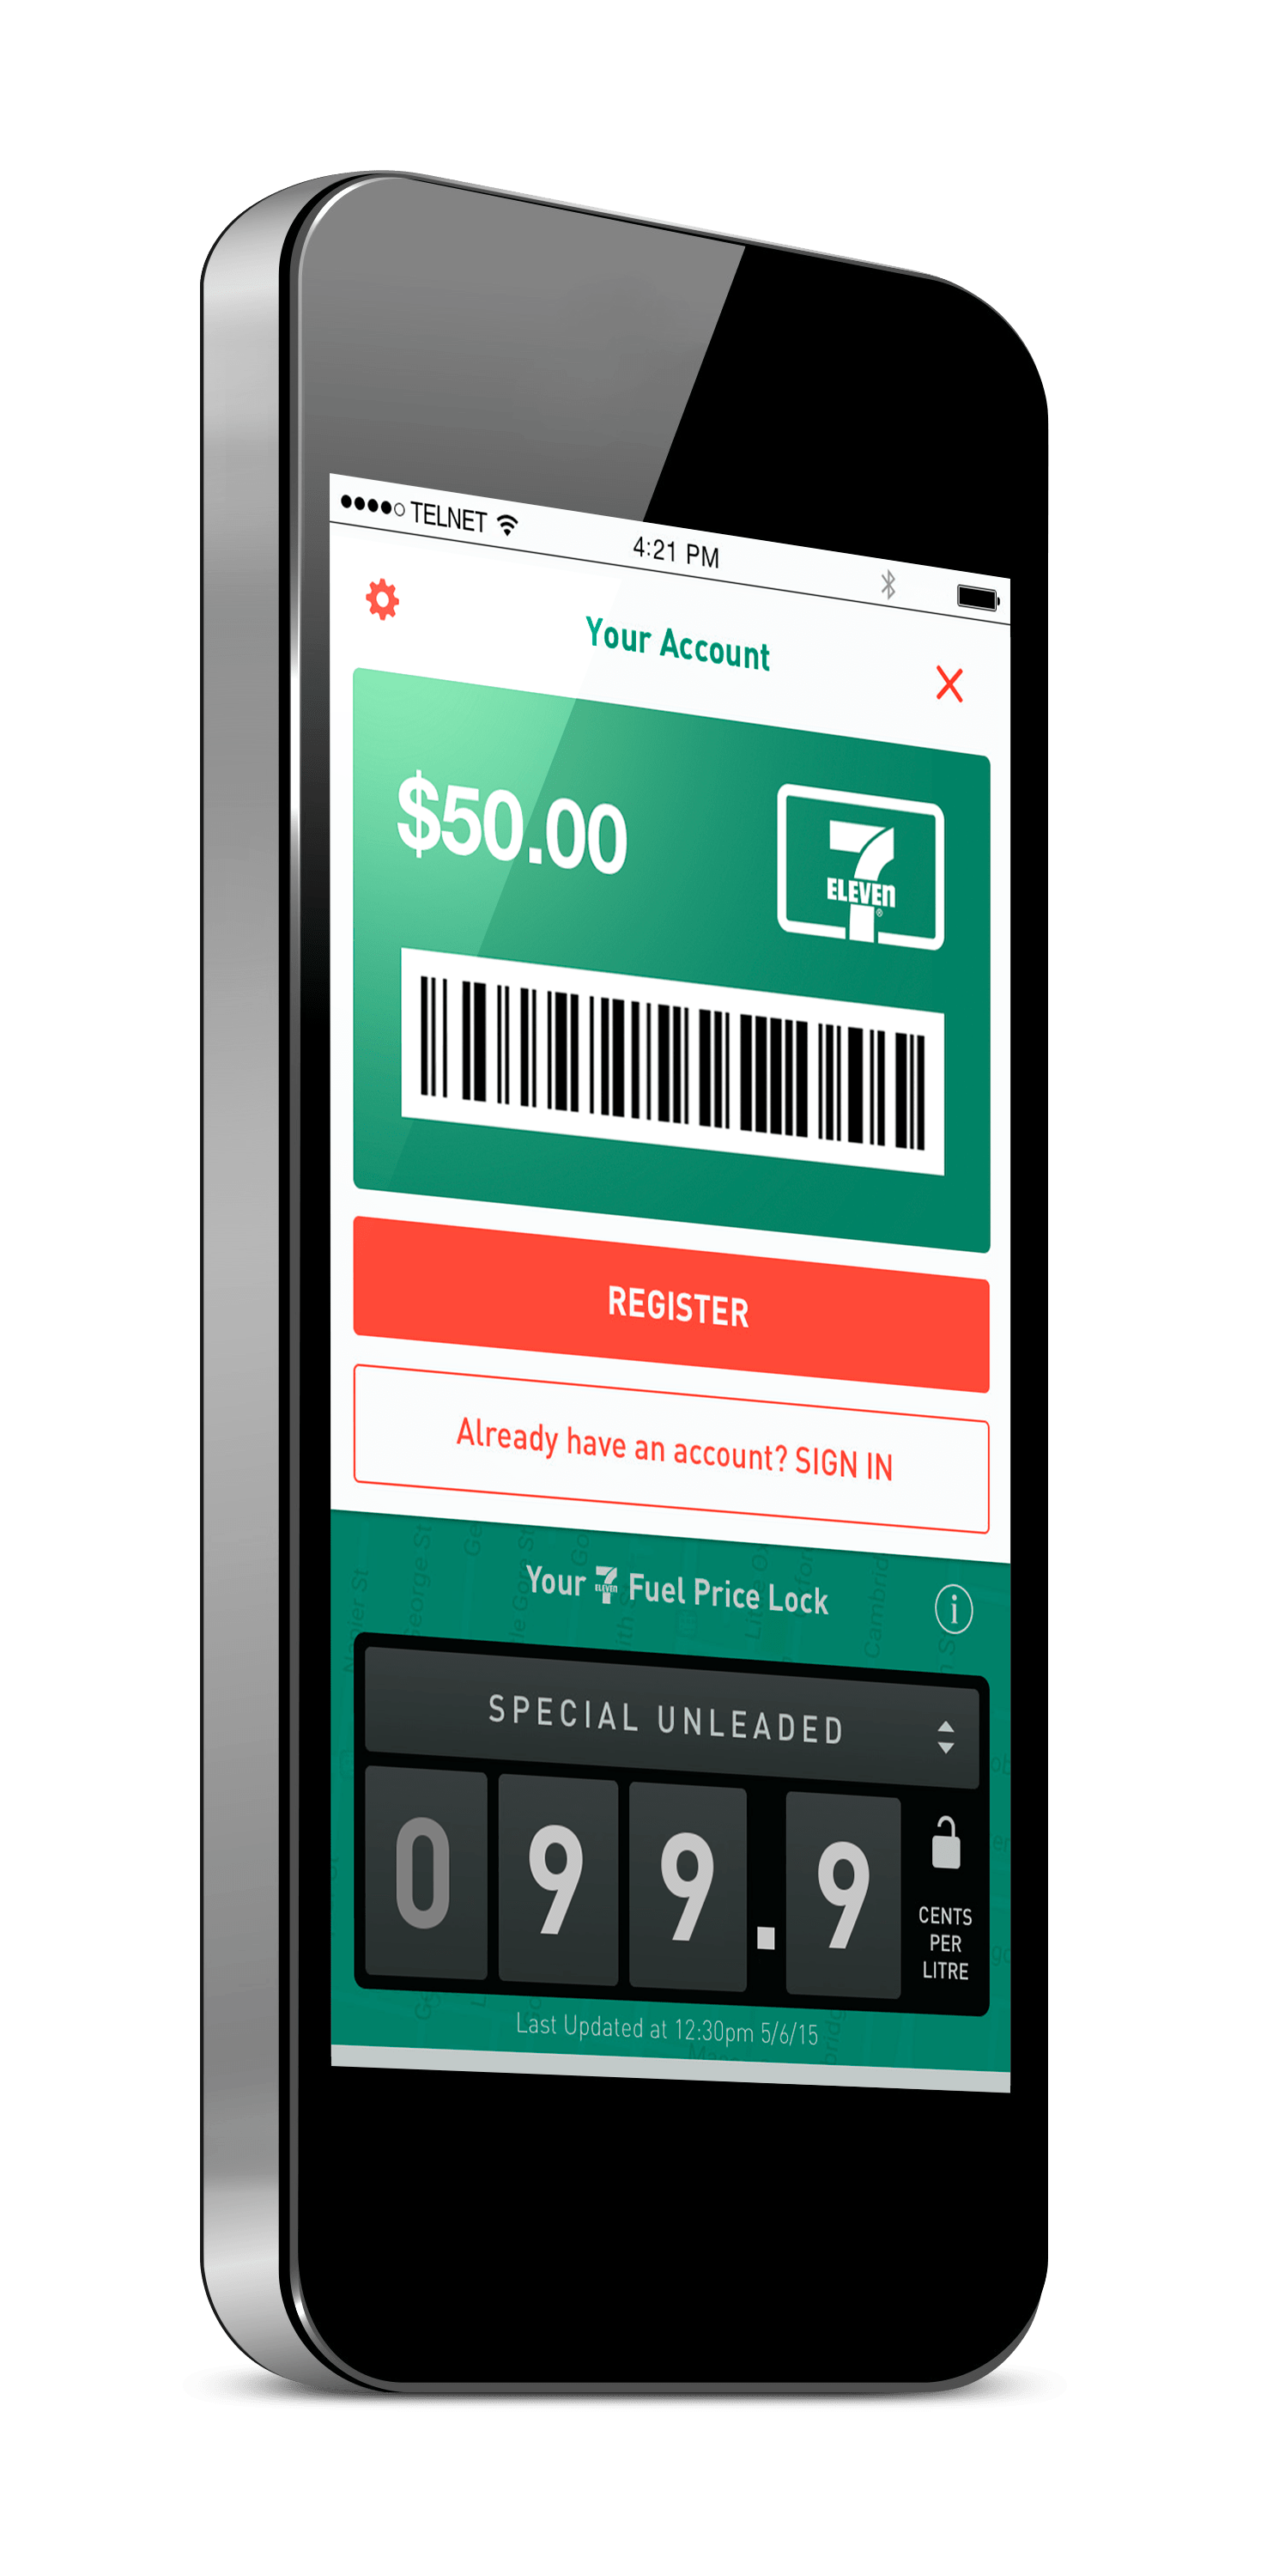 New 7 Eleven App Allows Drivers To Lock In Cheapest Fuel Price